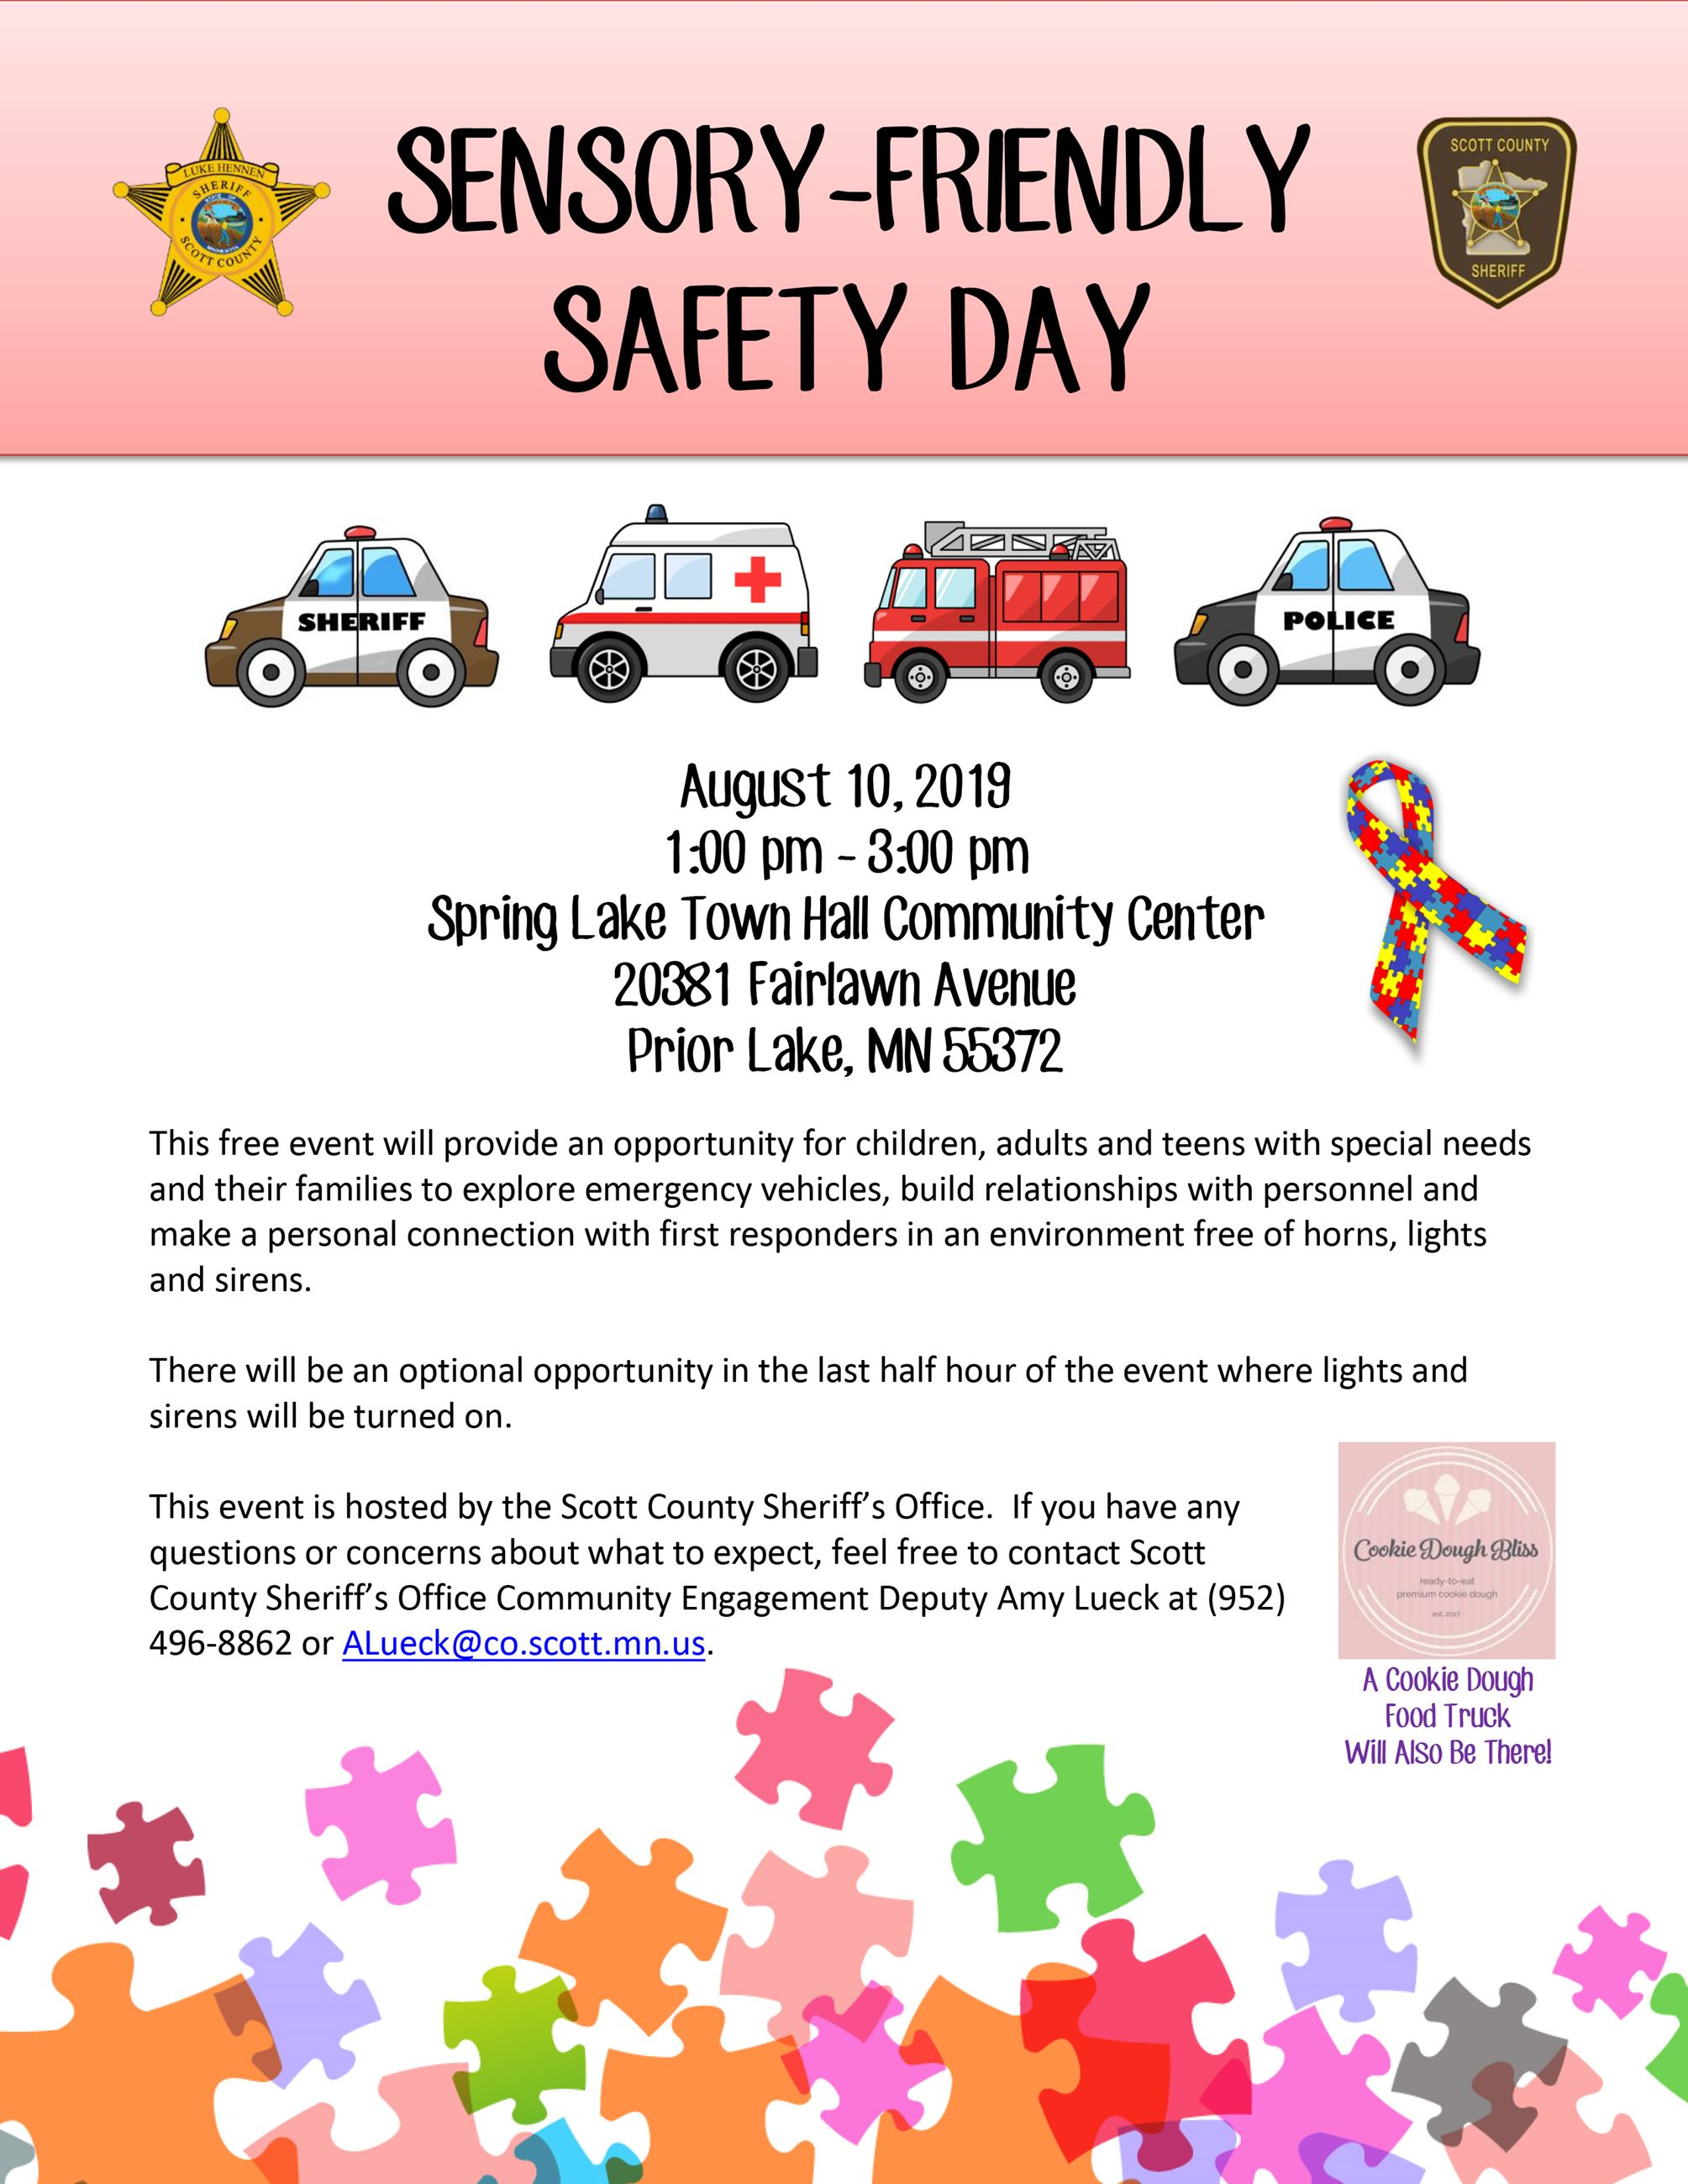 SCSO Sensory-Friendly Safety Day Flyer